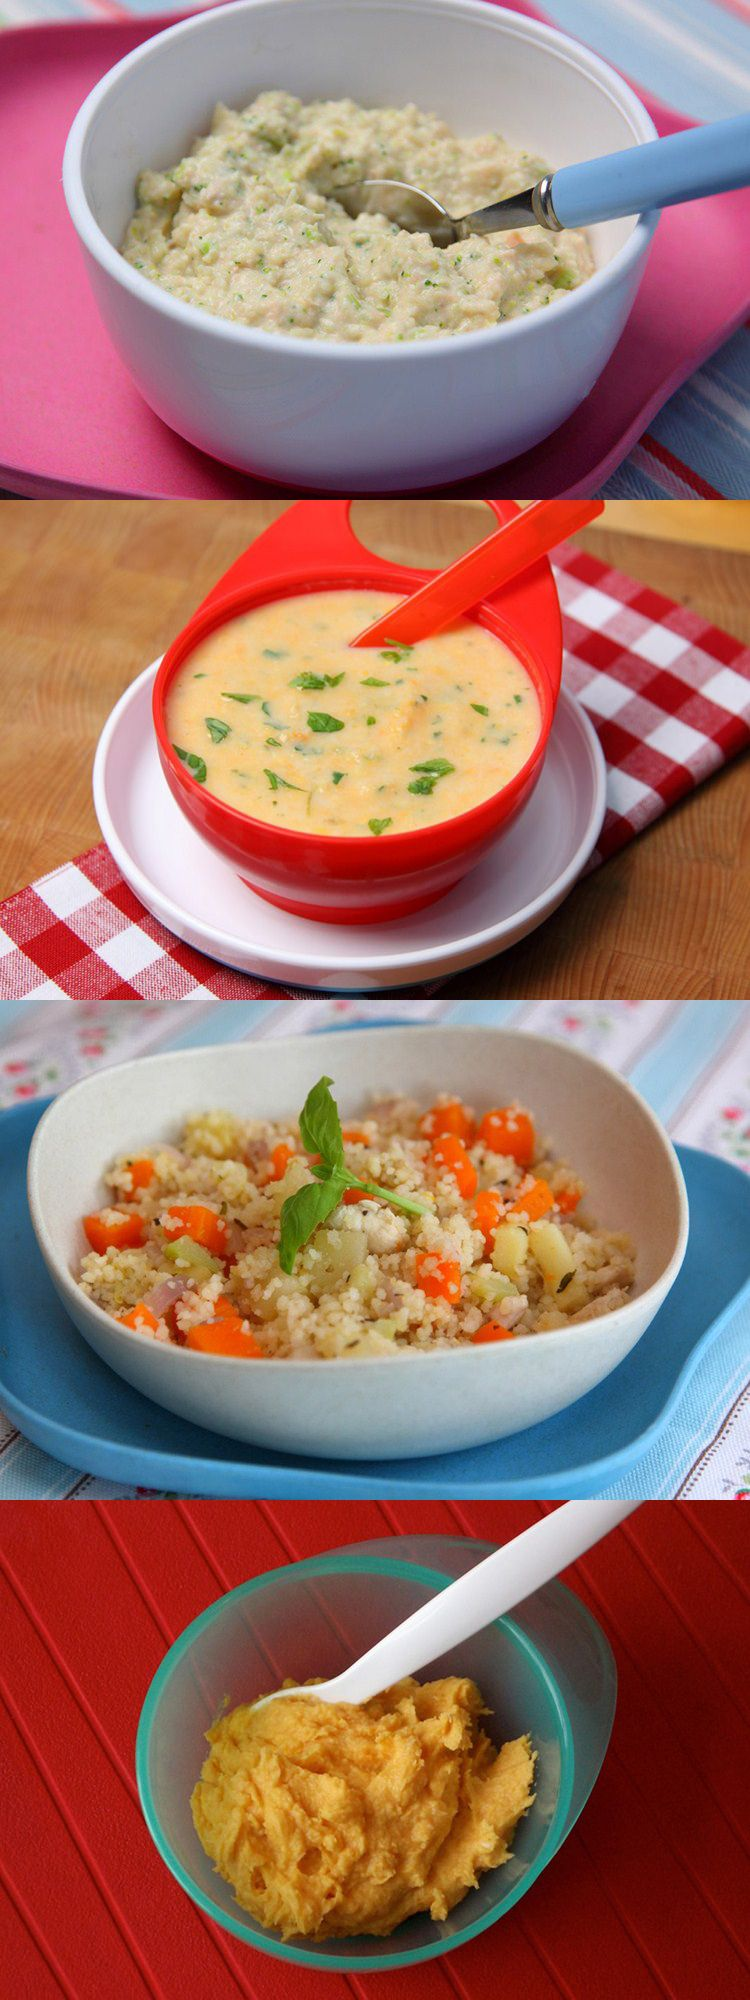 23 baby recipes suitable from 7 months | Babies | Baby ...